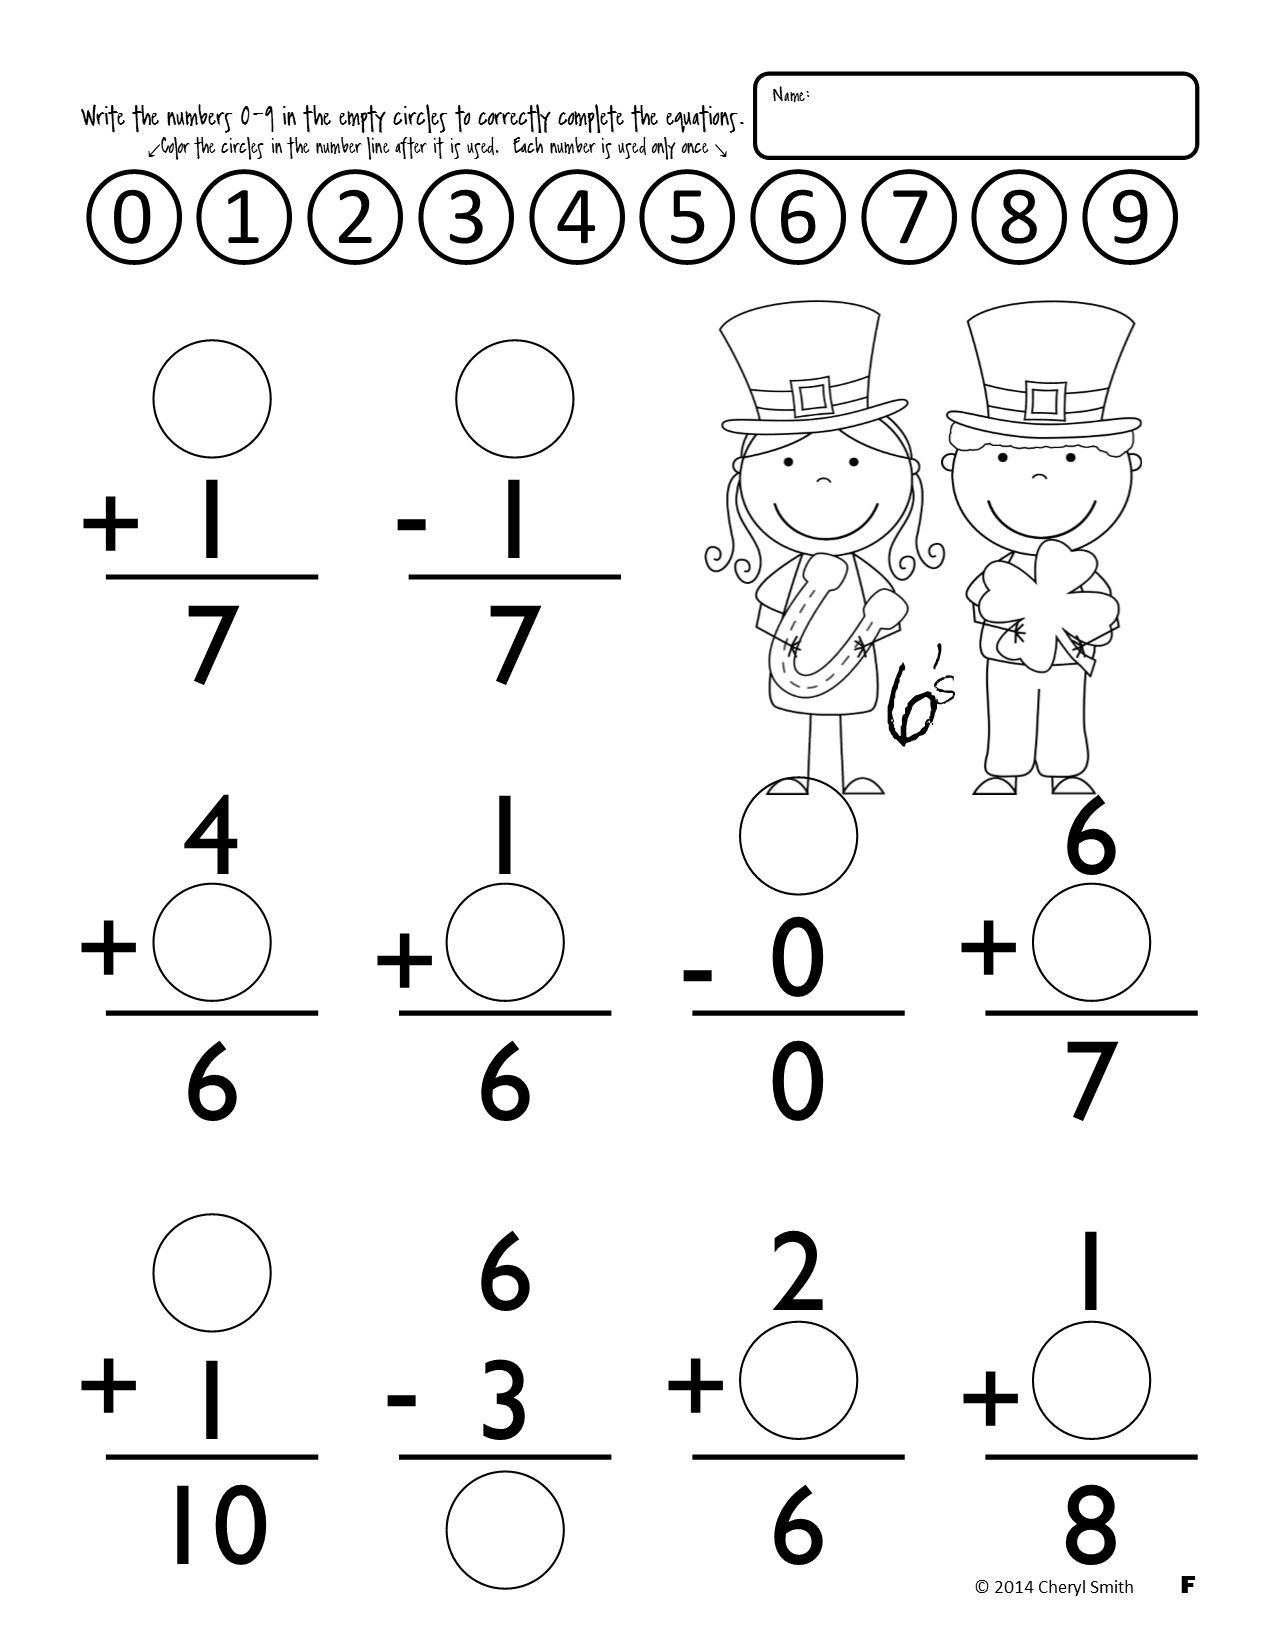 Math Facts St Patrick S Day Easter Addition And Subtraction Addition And Subtraction Worksheets Math Facts Subtraction Worksheets [ 1650 x 1275 Pixel ]